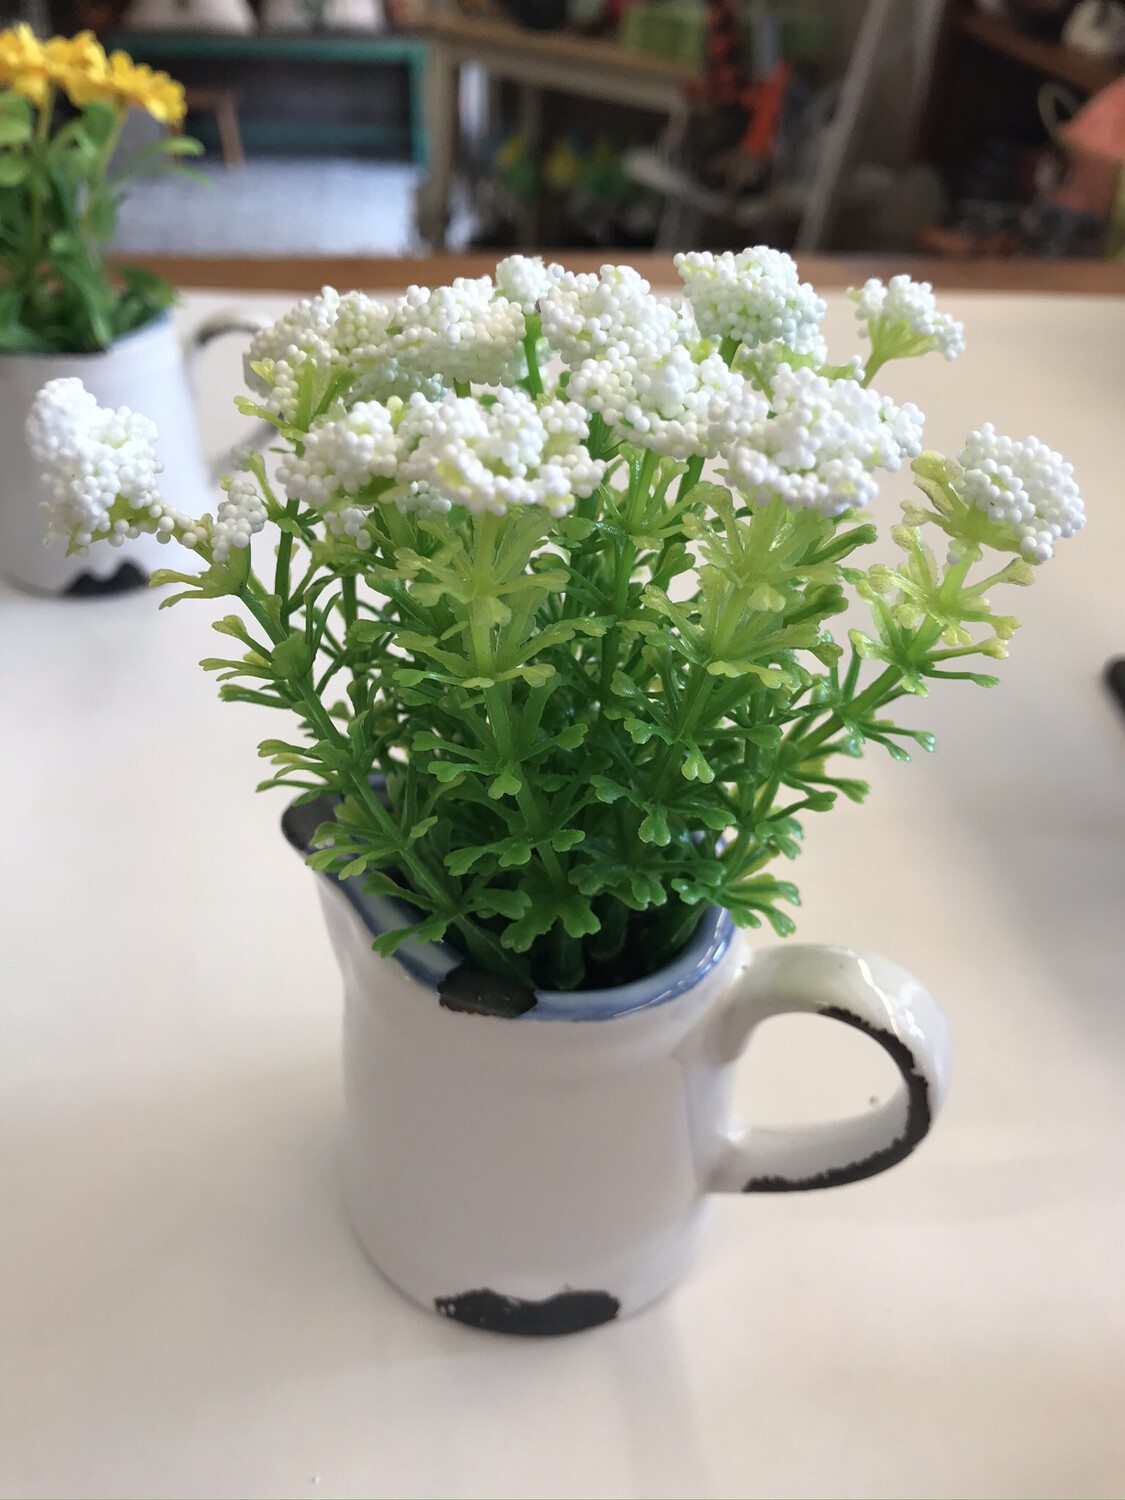 Flowers in Pitcher